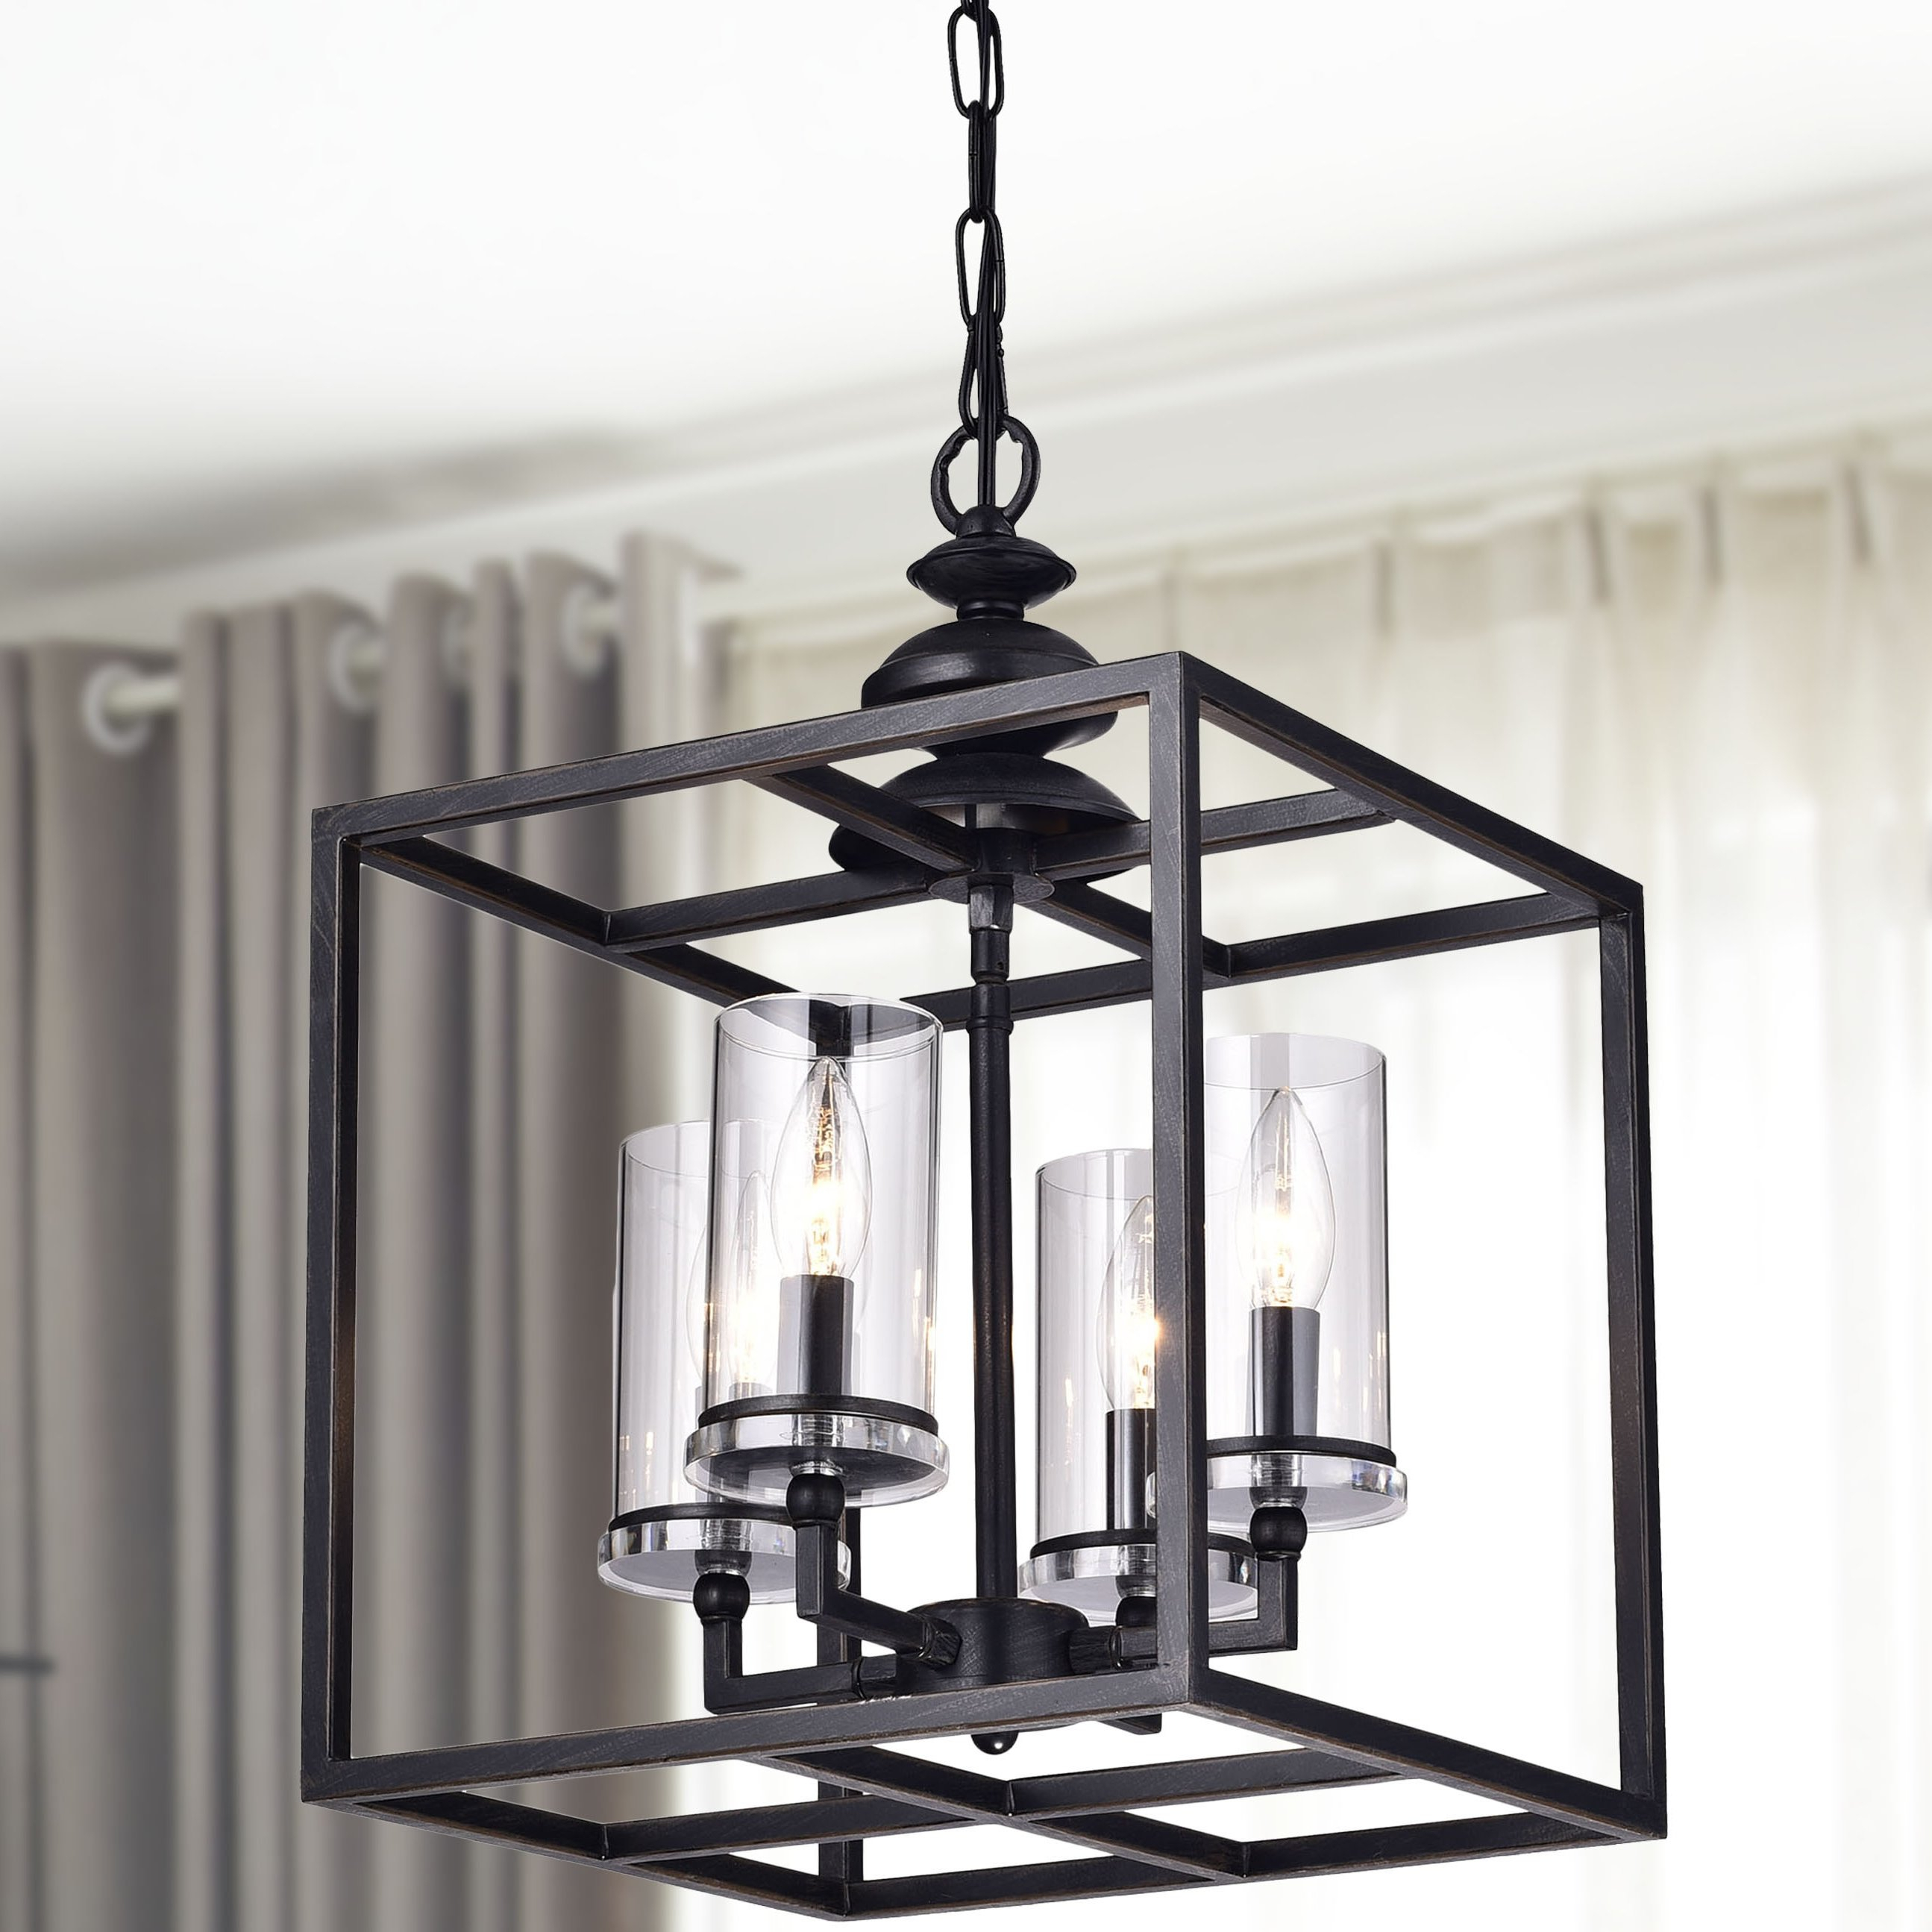 Didmarton 4 Light Square/rectangle Chandelier Pertaining To Ellenton 4 Light Rectangle Chandeliers (Gallery 5 of 30)